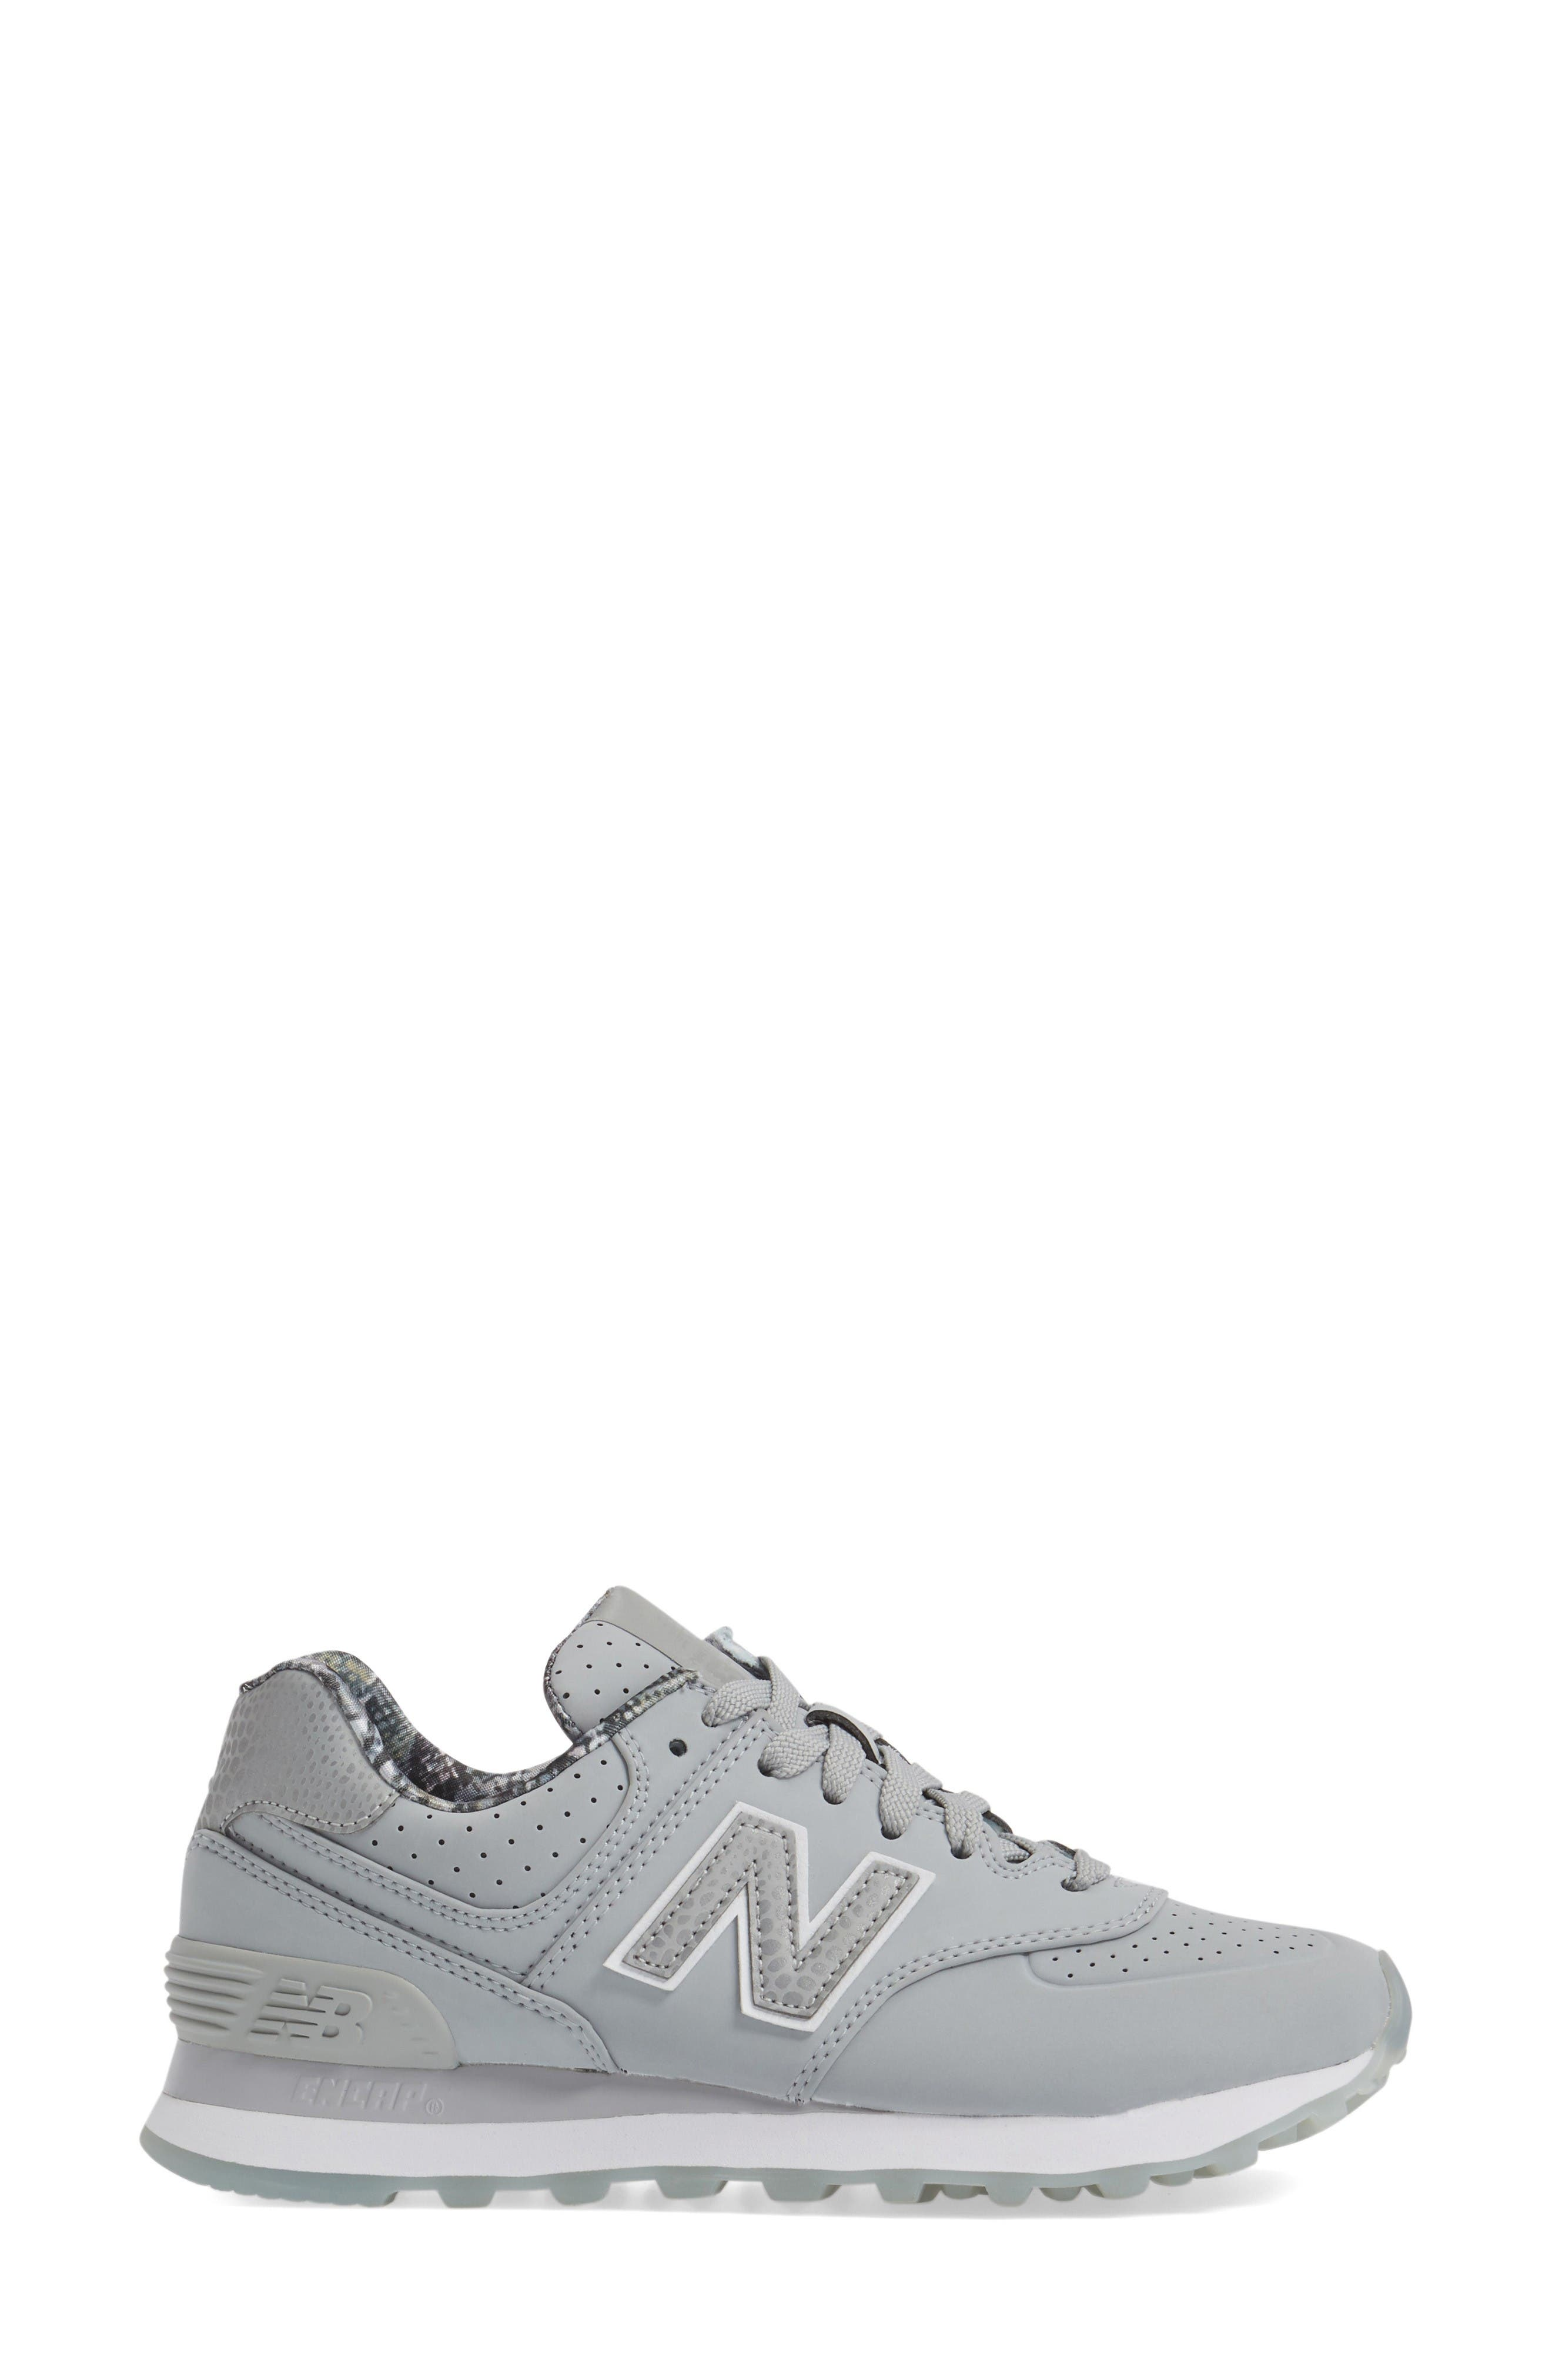 Alternate Image 3  - New Balance 574 Luxe Rep Sneaker (Women)